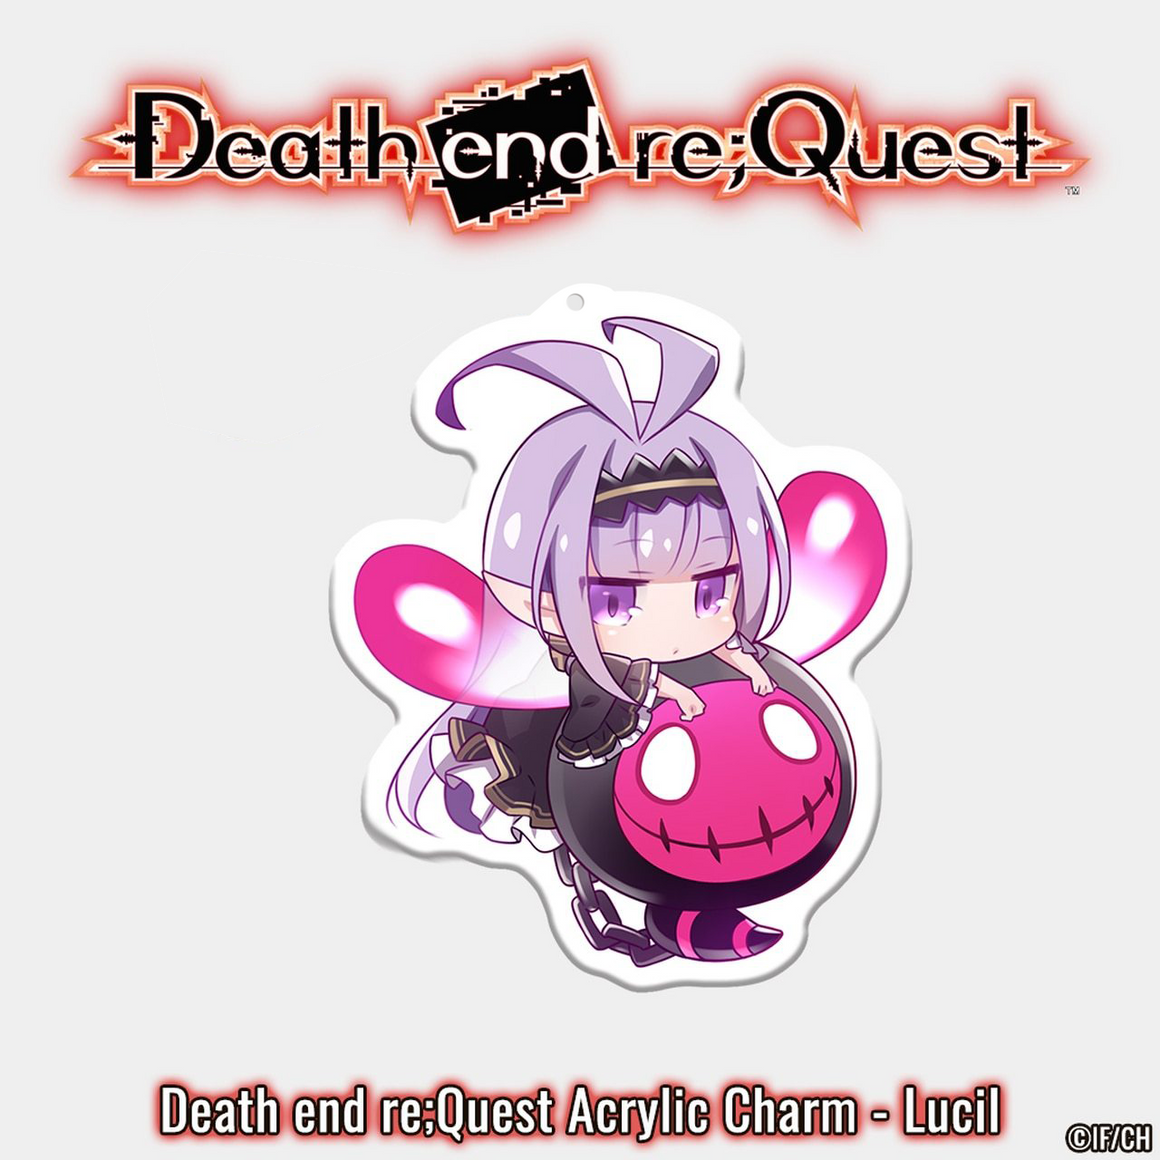 Death end re;Quest Acrylic Charms - 3 inch - Lucil